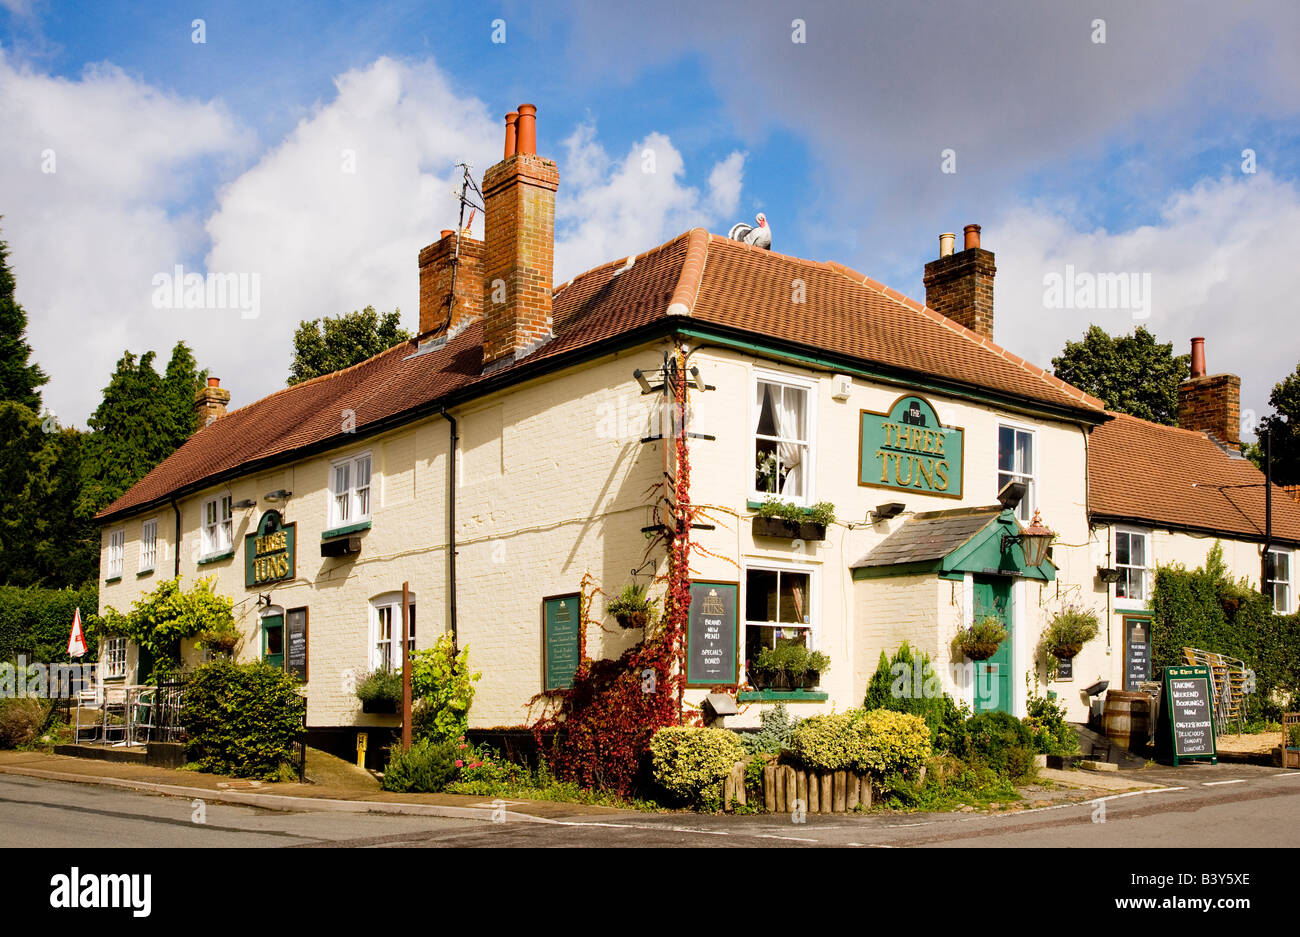 The Three Tuns a typical English country village pub at Great Bedwyn,Wiltshire,England,Great Britain,UK - Stock Image